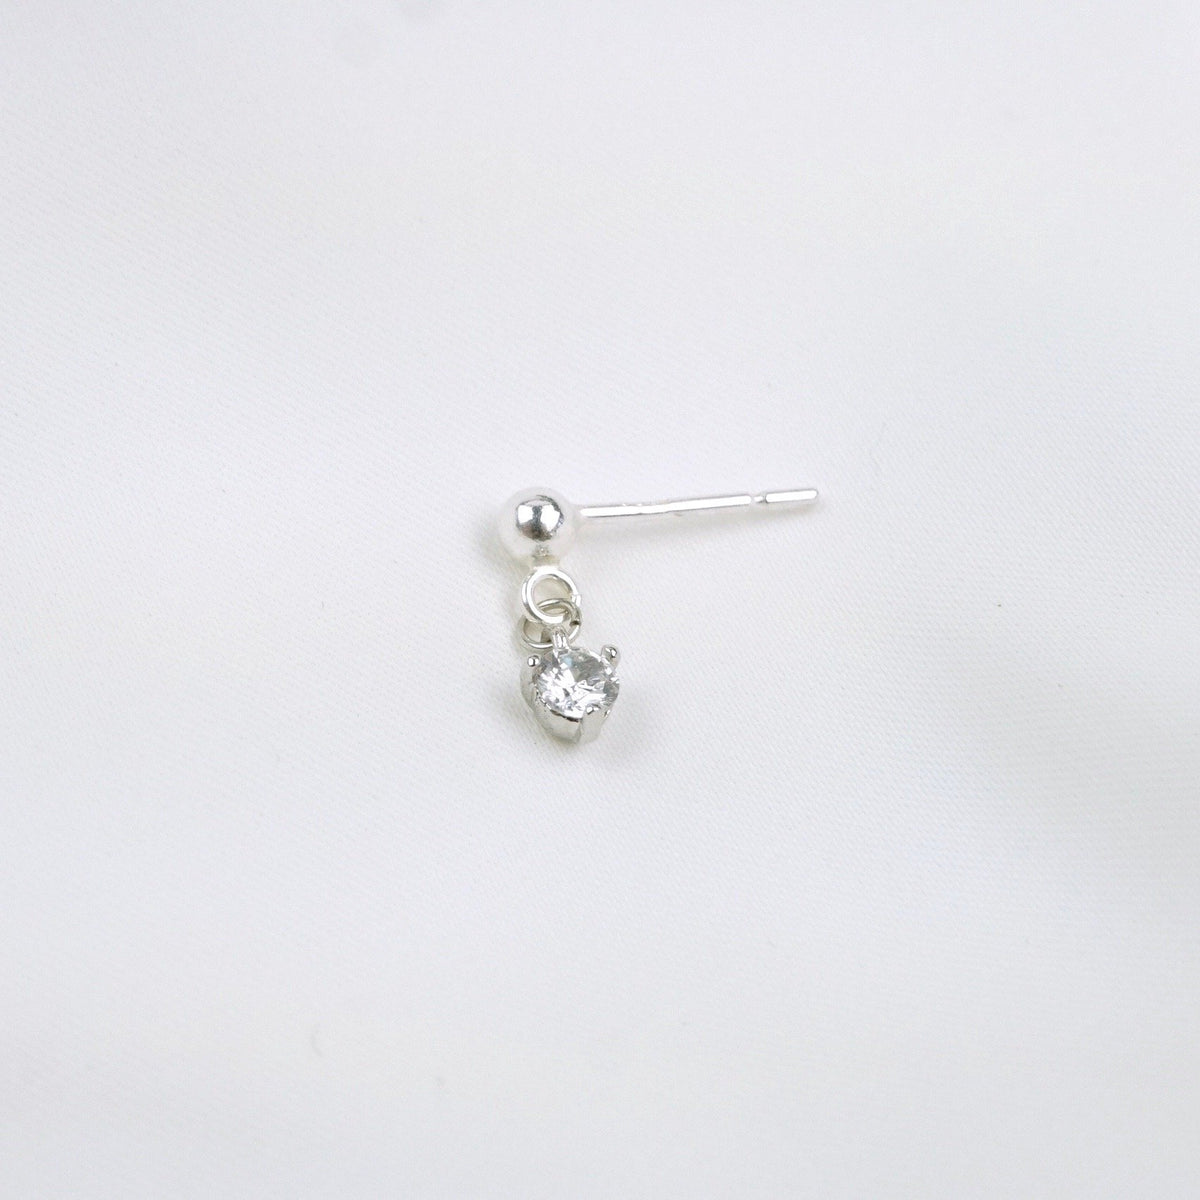 Silver Small Zirconia Earpin